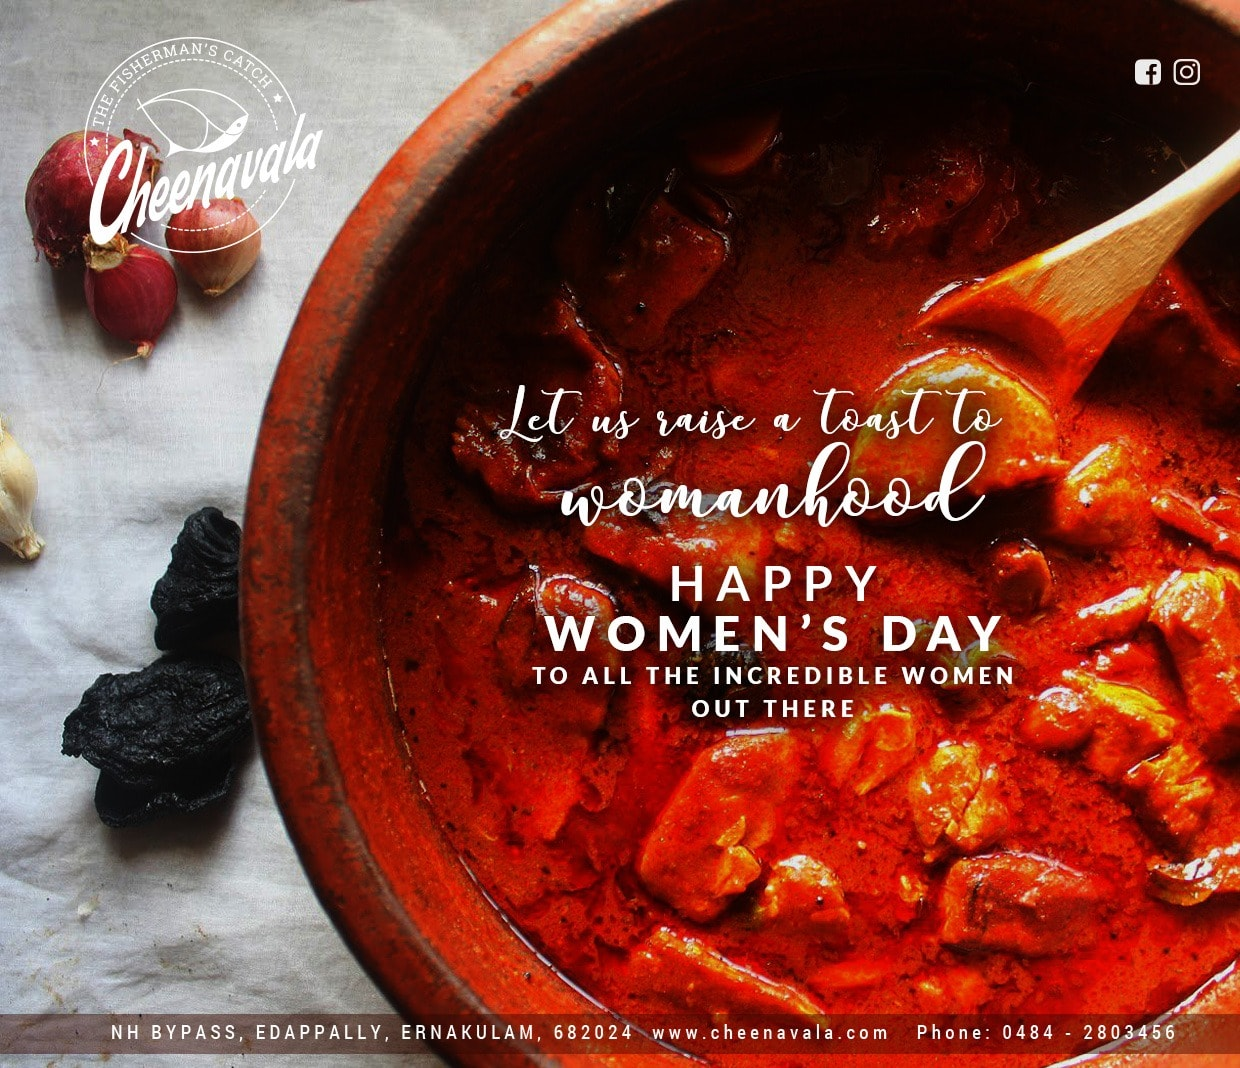 Best seafood restaurant in Kochi for all the incredible womens.